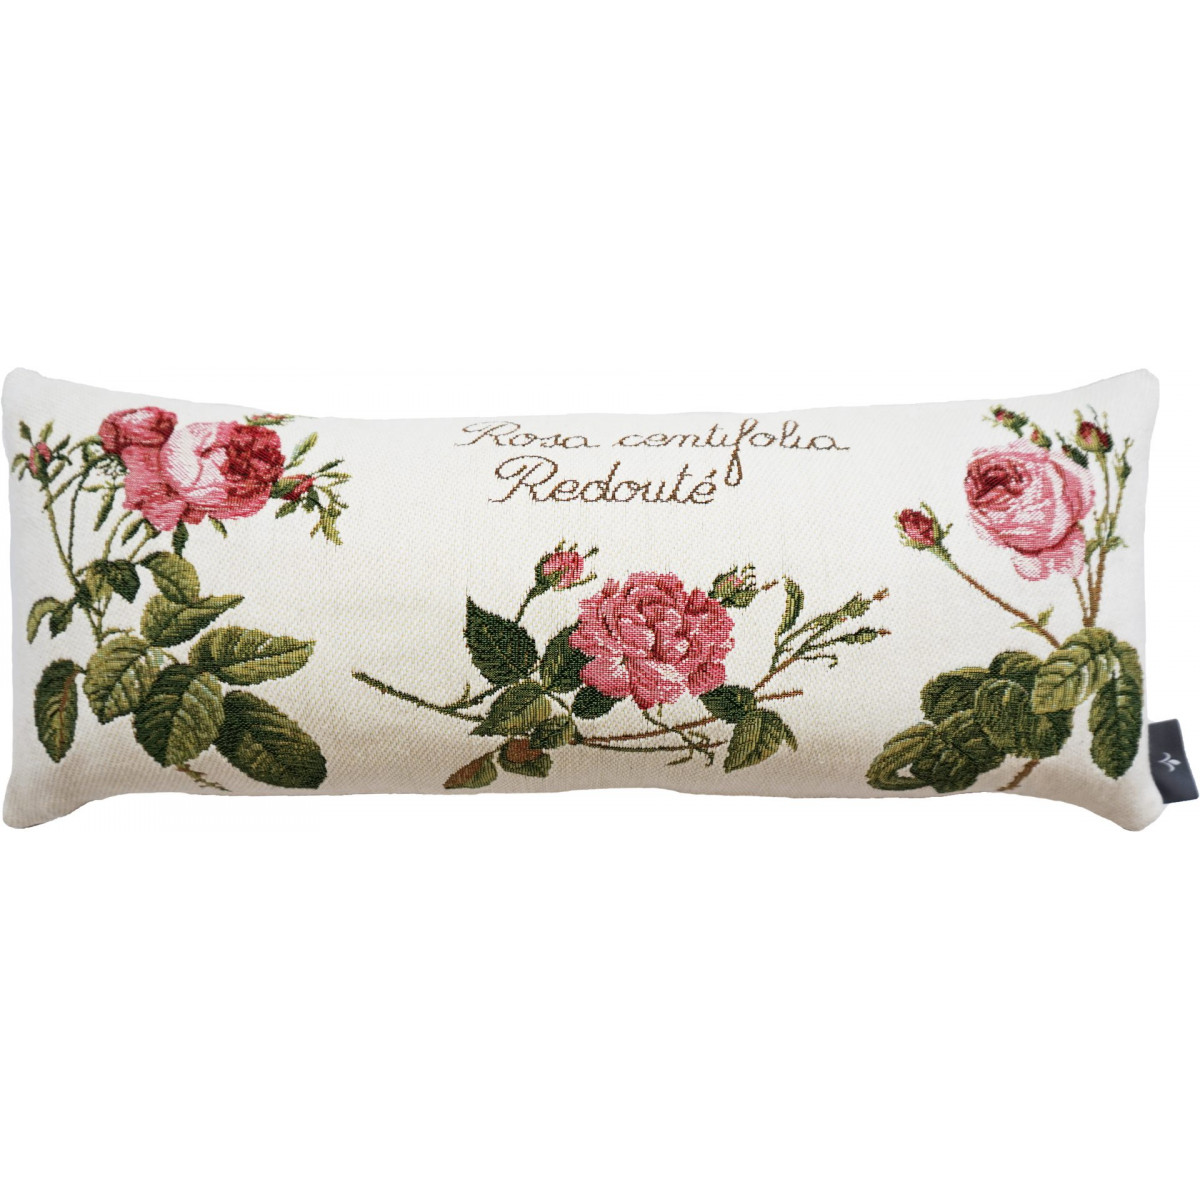 Coussin roses de redouté made in france blanc 25x60